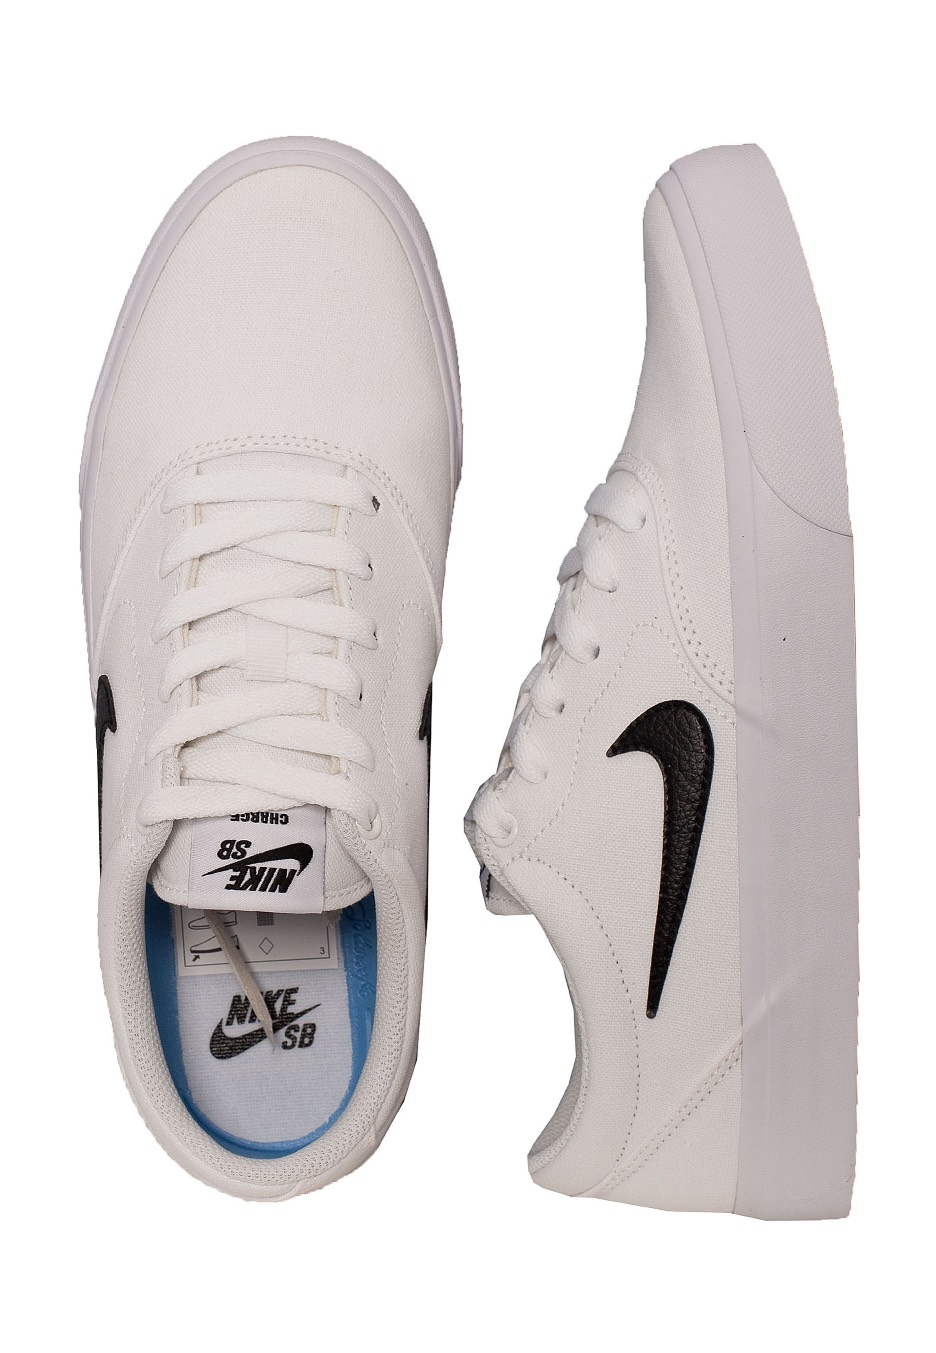 cáustico Atrevimiento Pero  Nike - SB Charge Solar White/Black/White/Gum/Light Brown - Shoes - Fashion  Shop - Impericon.com UK